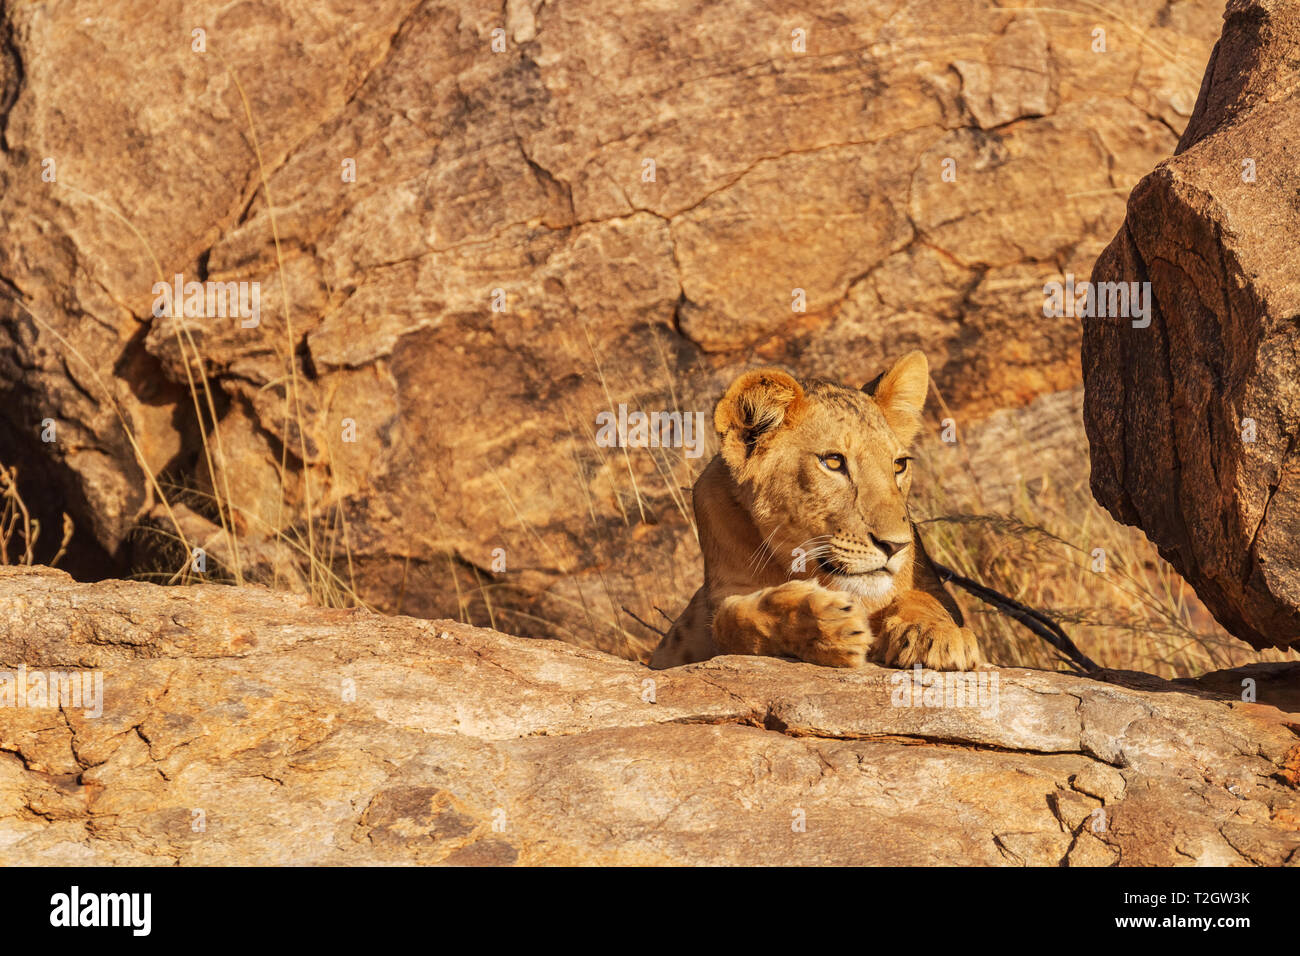 Lioness lion, panthera leo, hidden camouflaged on rocks, head face claws eyes. Samburu National Reserve, Kenya, Africa. Copy space search for prey Stock Photo